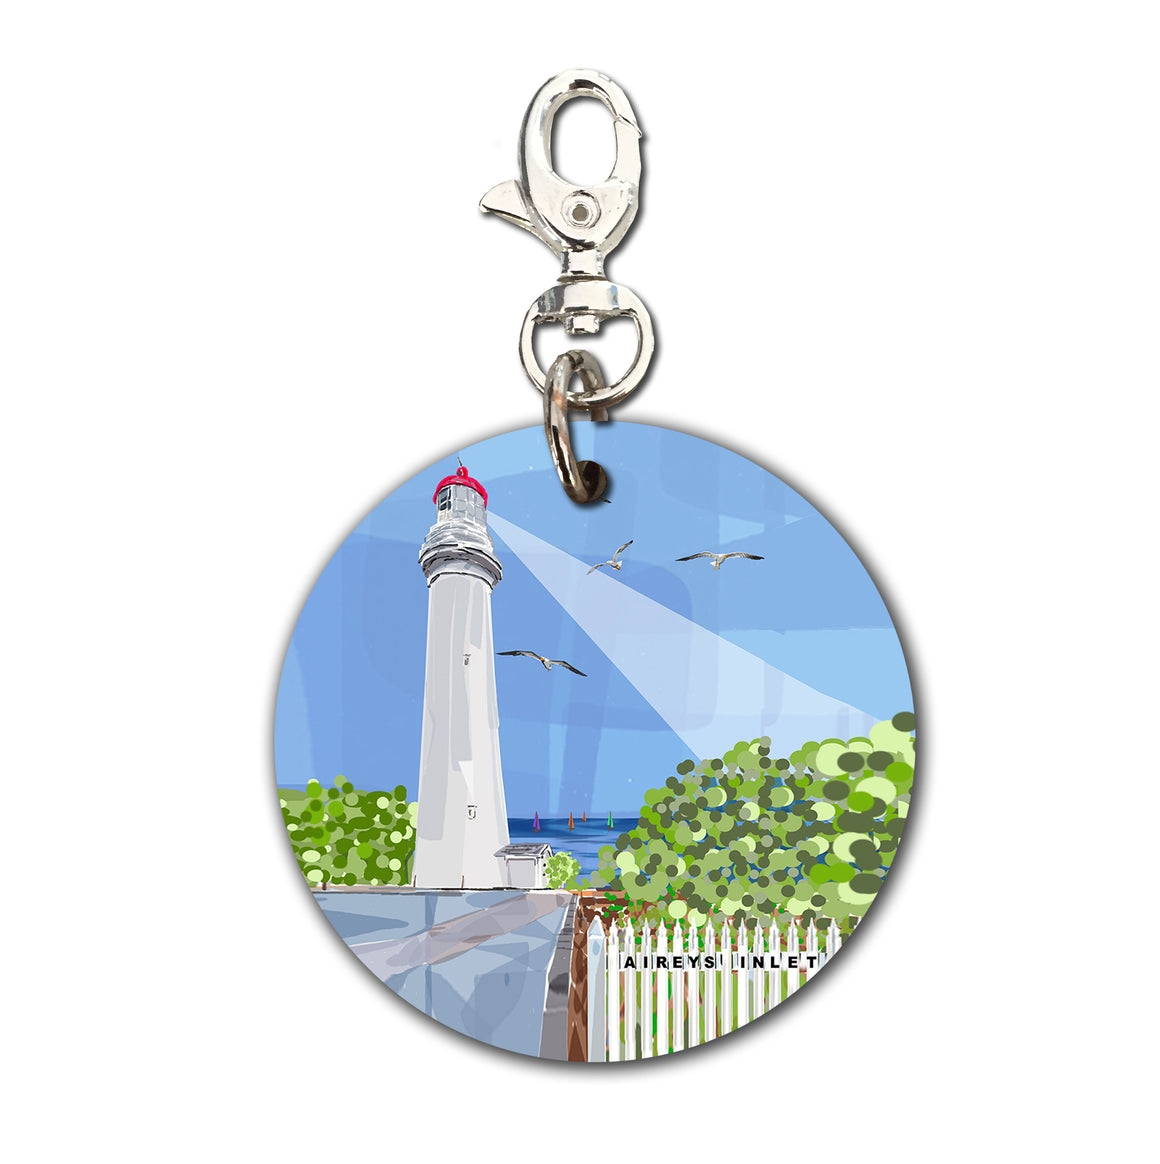 Keyring (Circular) - Iconic Bellarine Airey's Inlet Light House